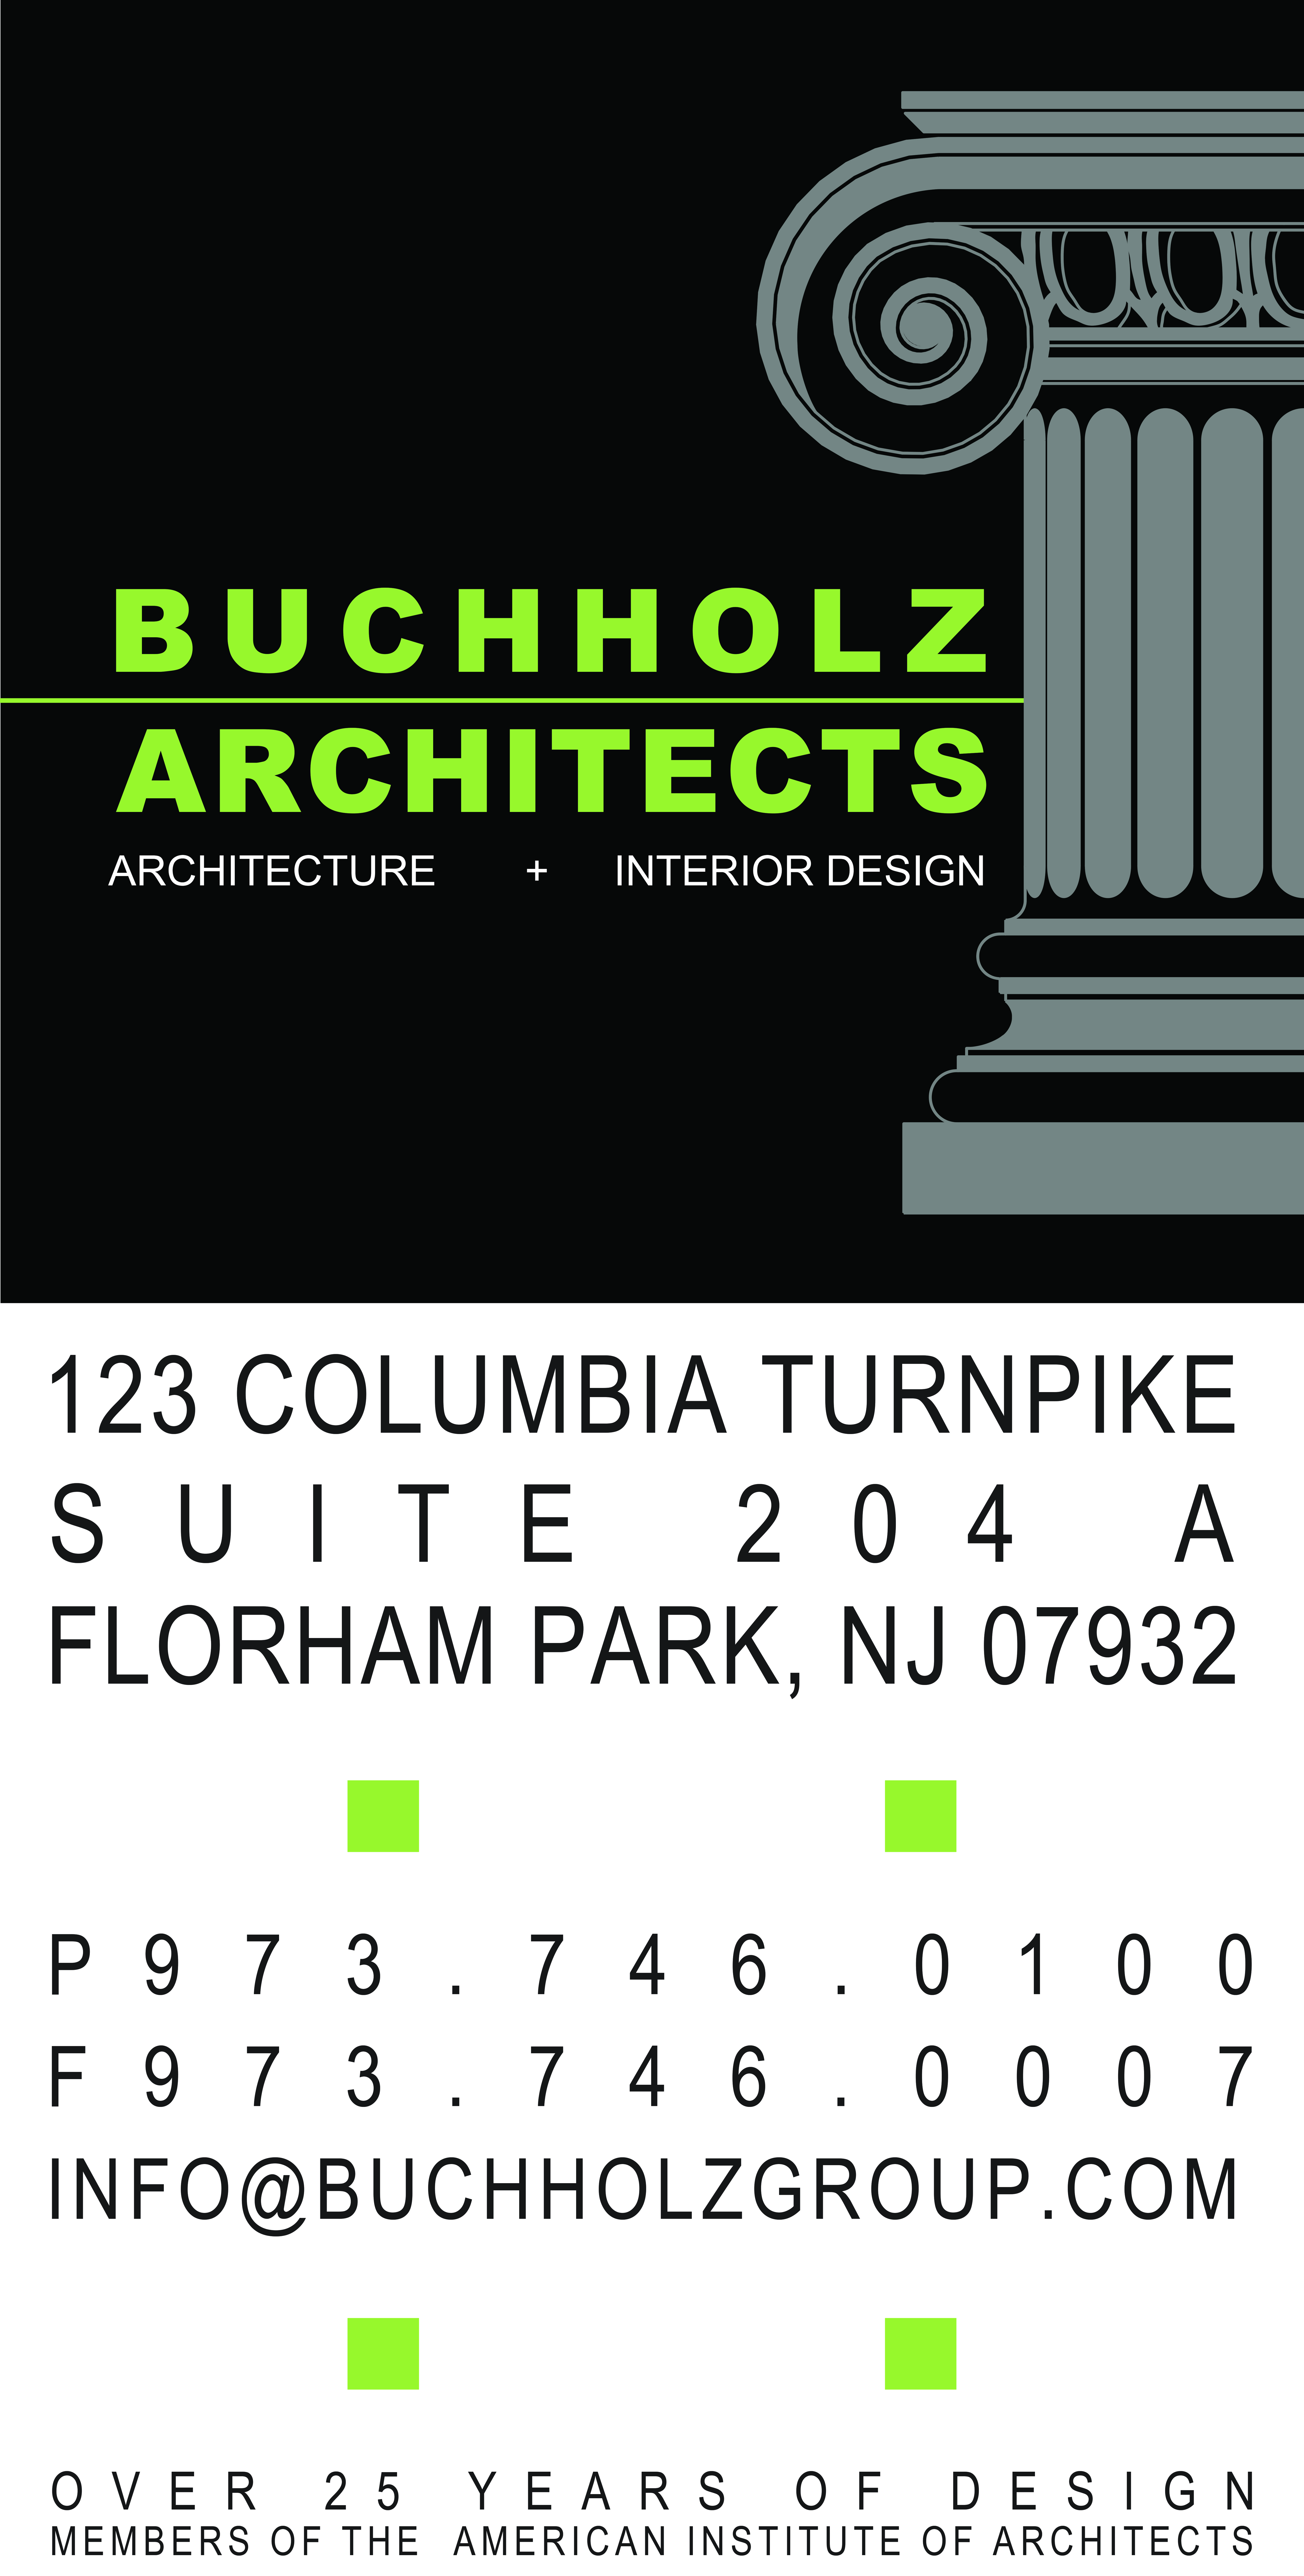 Buchholz Architects